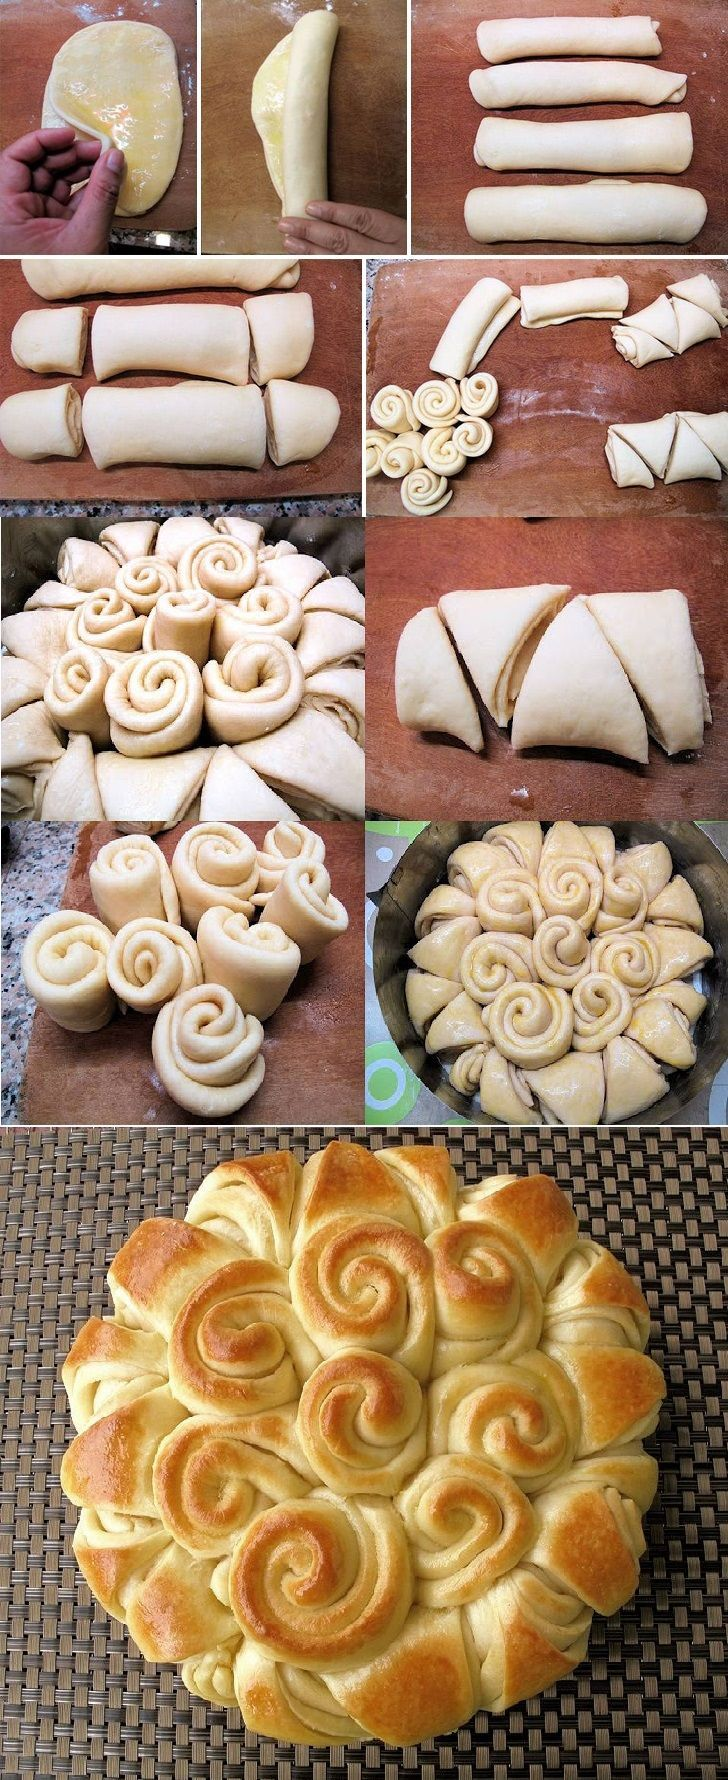 Happy Holiday Bread. I don't usually pin these long pins, but this was just too pretty not to share. Can you imagine this on the table for Easter or any gathering, for that matter!